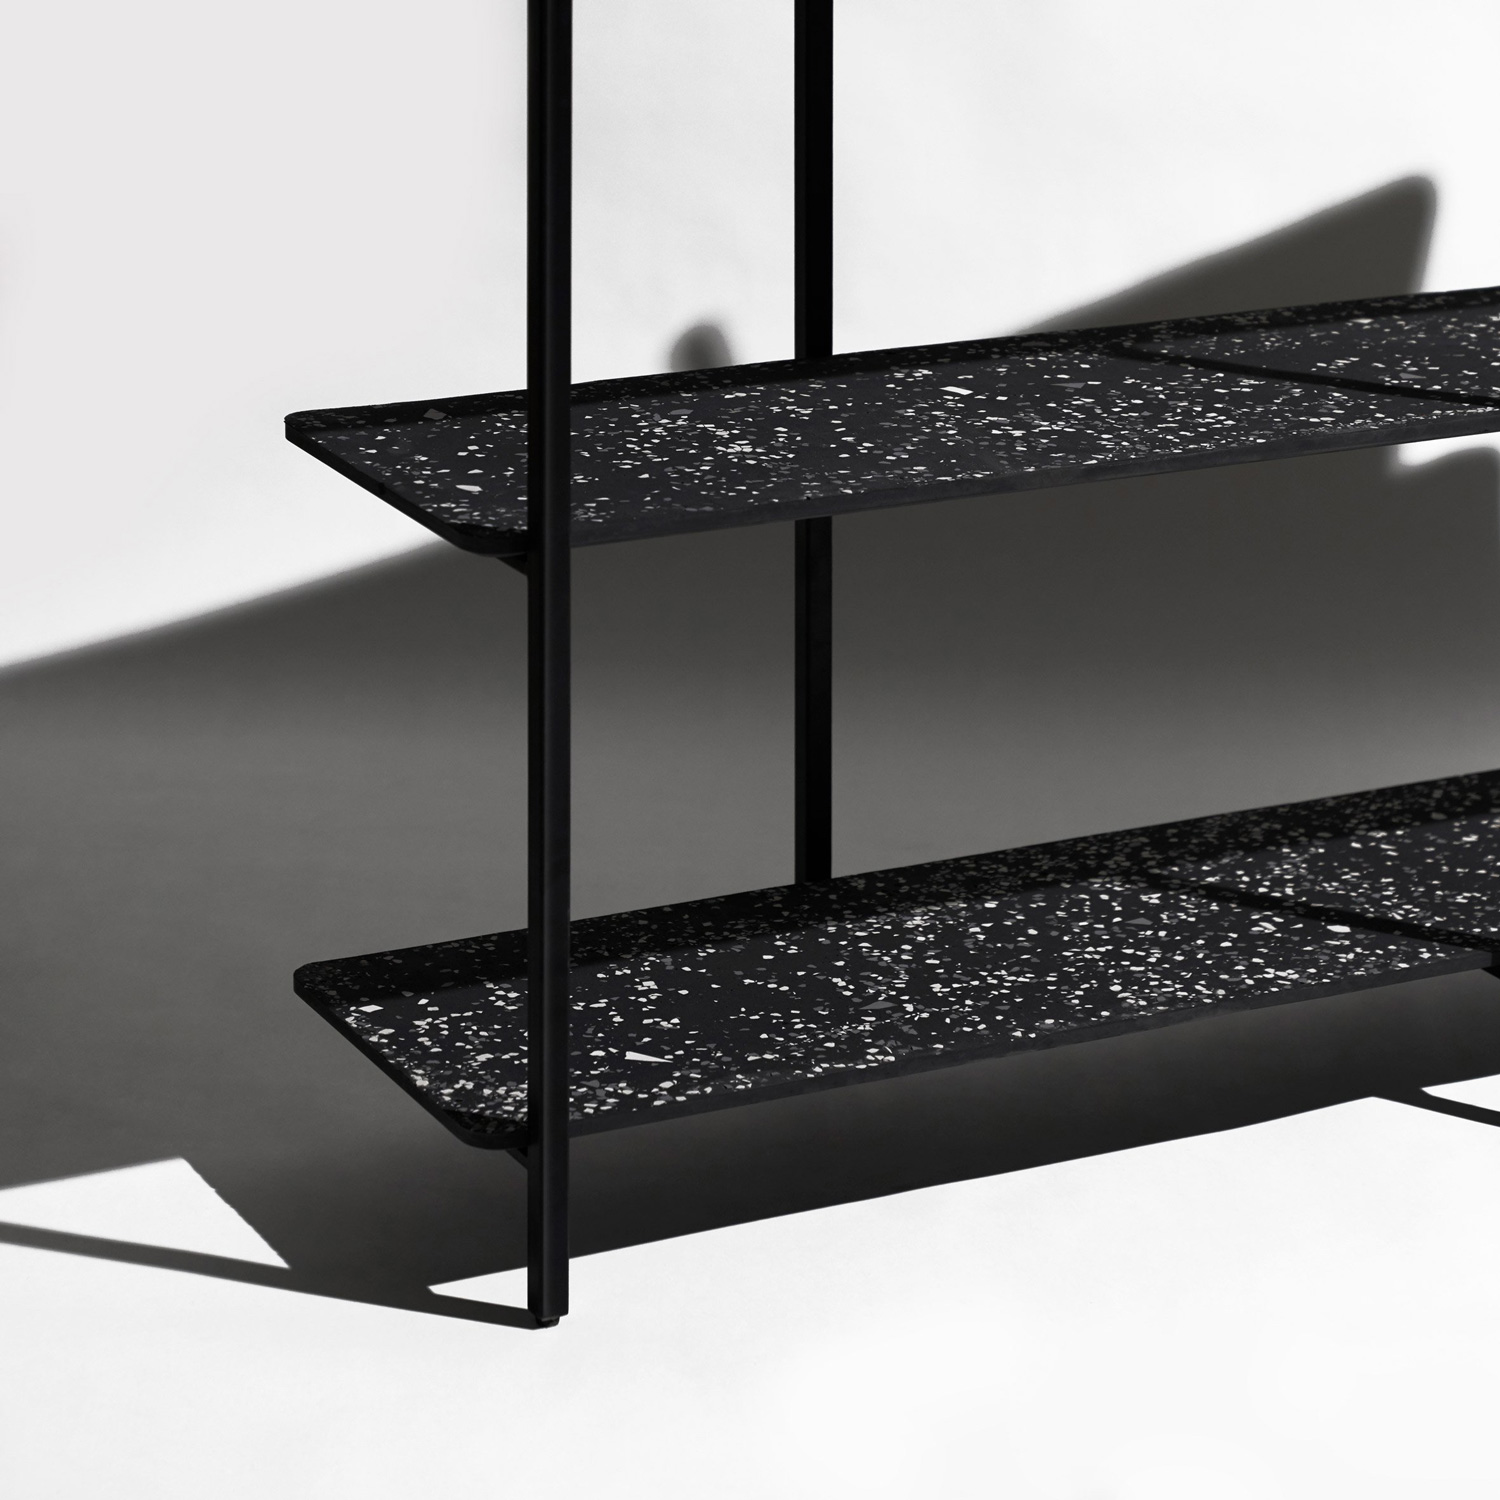 Bentu Design Terrazzo Furniture Using Recycled Ceramic Waste | Yellowtrace